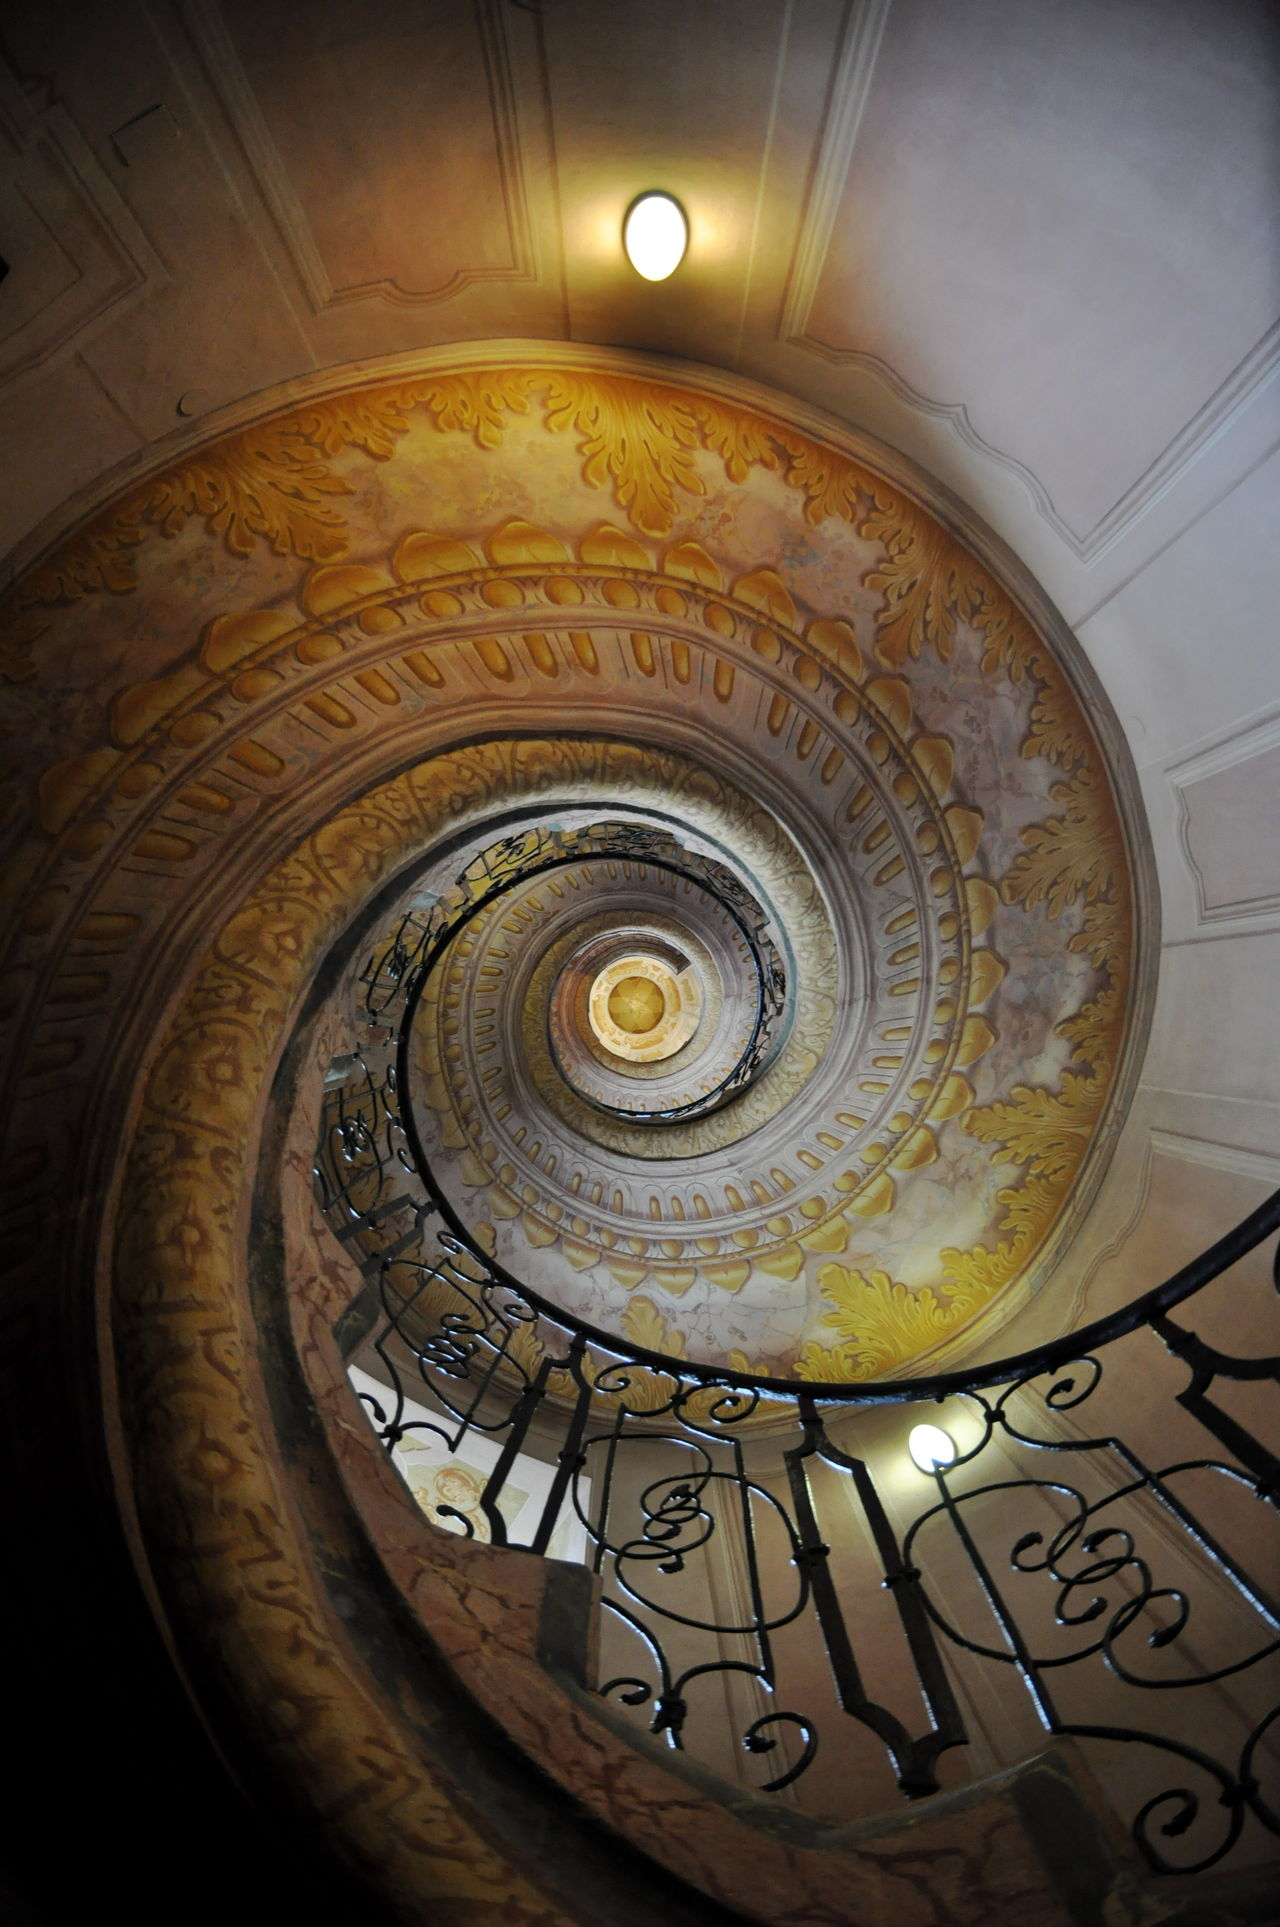 Melk Abbey Stairs Architecture Architecture And Art Built Structure Circle Coil Diminishing Perspective Indoors  Melk Melk Abbey No People Spiral Spiral Staircase Spiral Stairs Staircase Steps